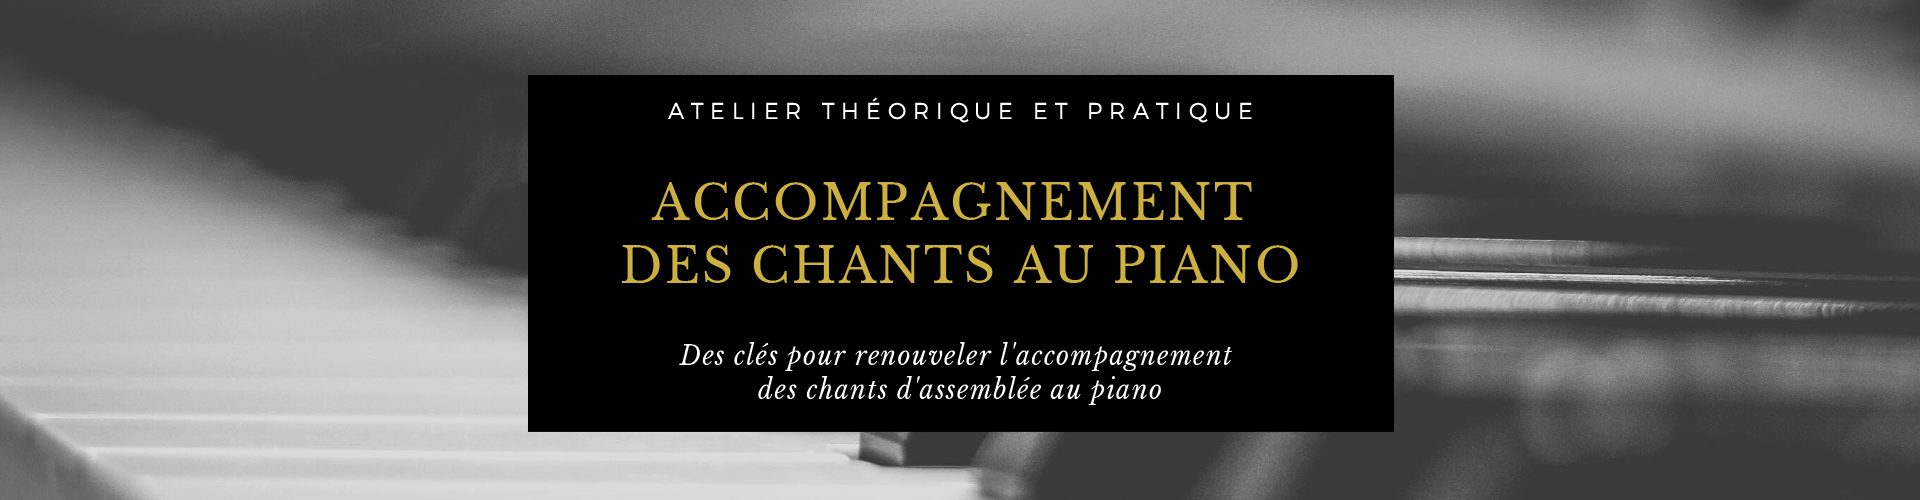 slide atelier accompagnement piano 2020